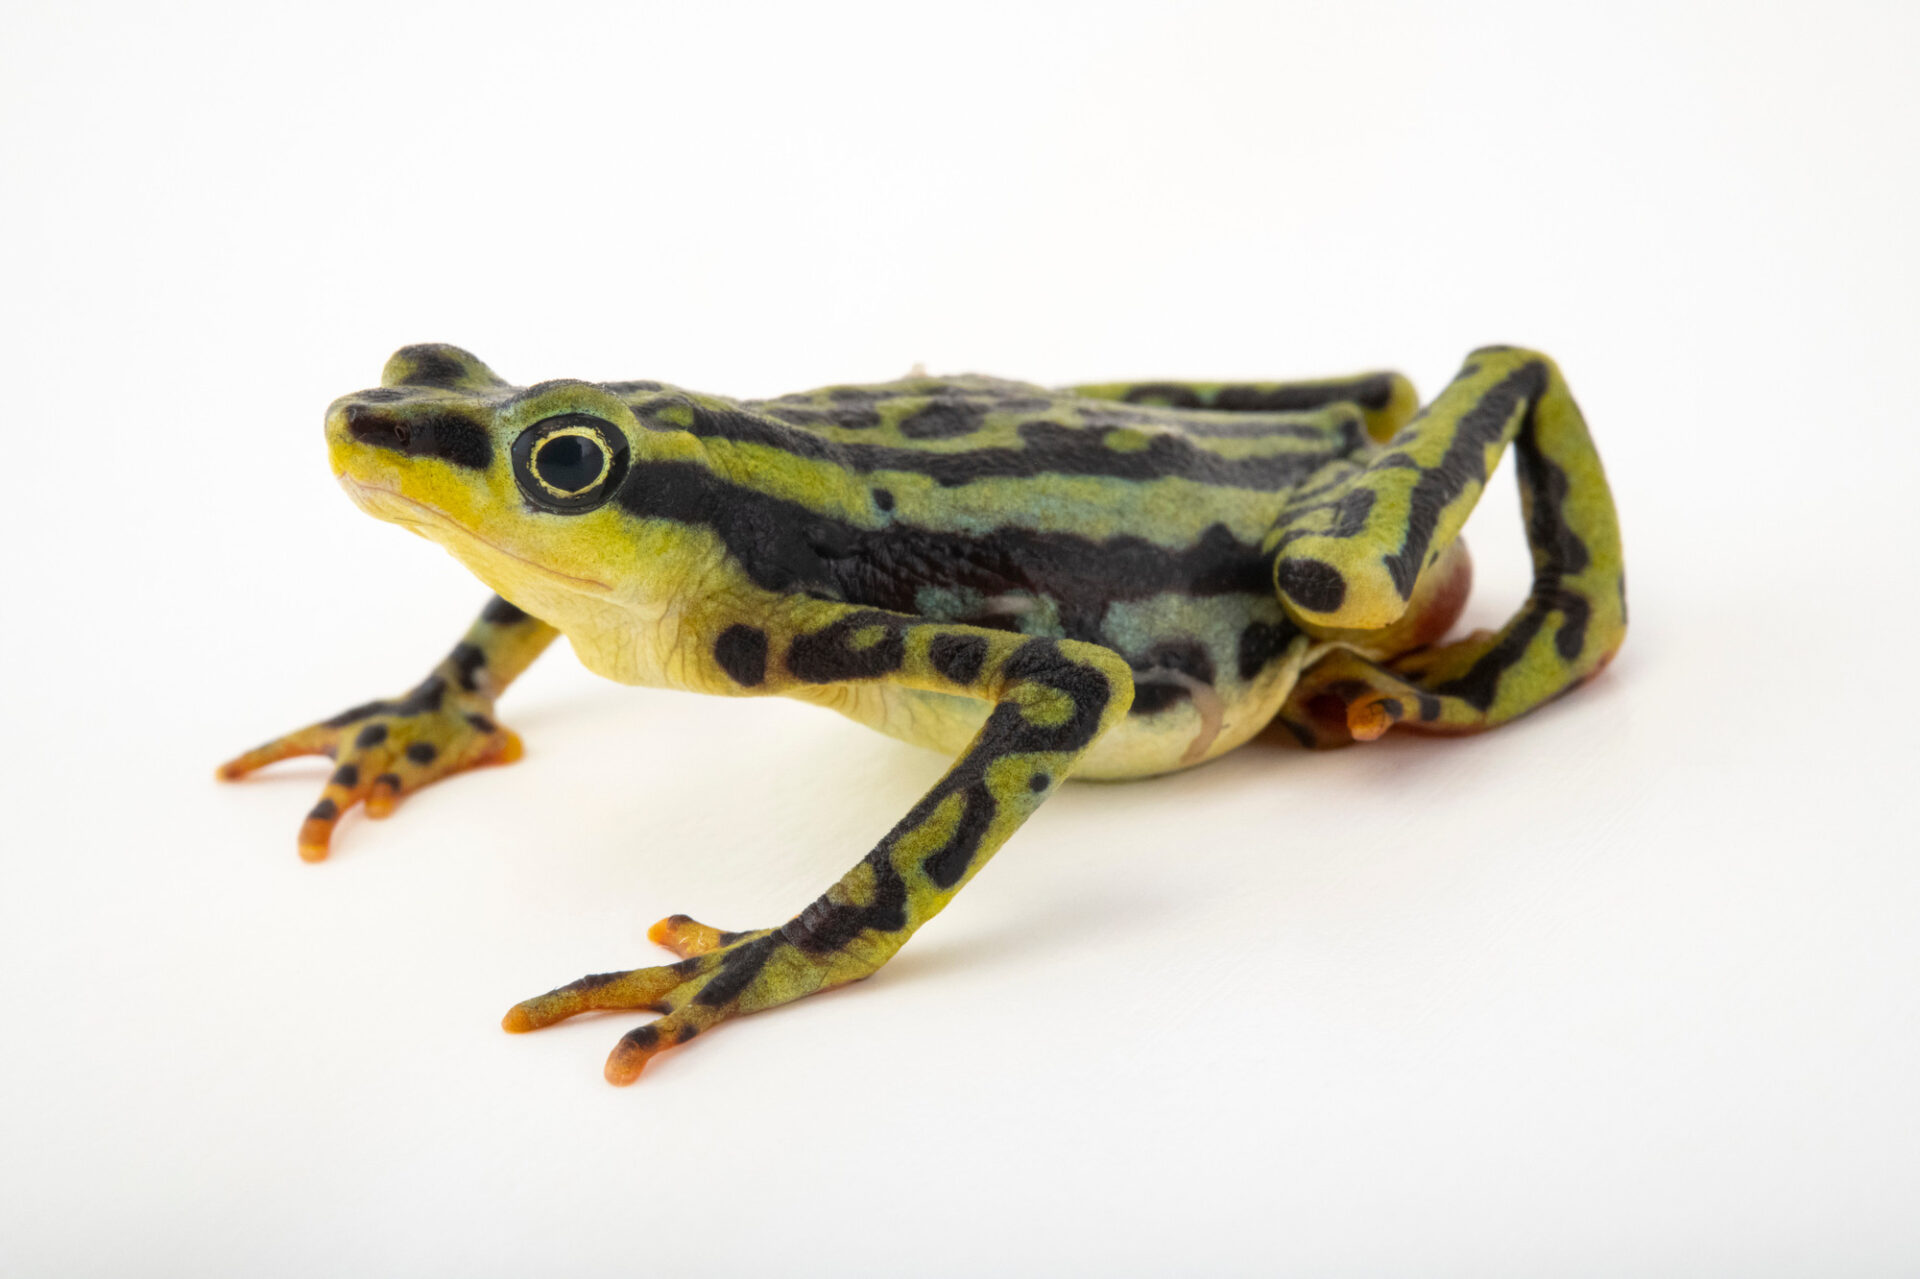 Photo: An endangered female elegant harlequin frog (Atelopus elegans) at Centro Jambatu in Quito, Ecuador.